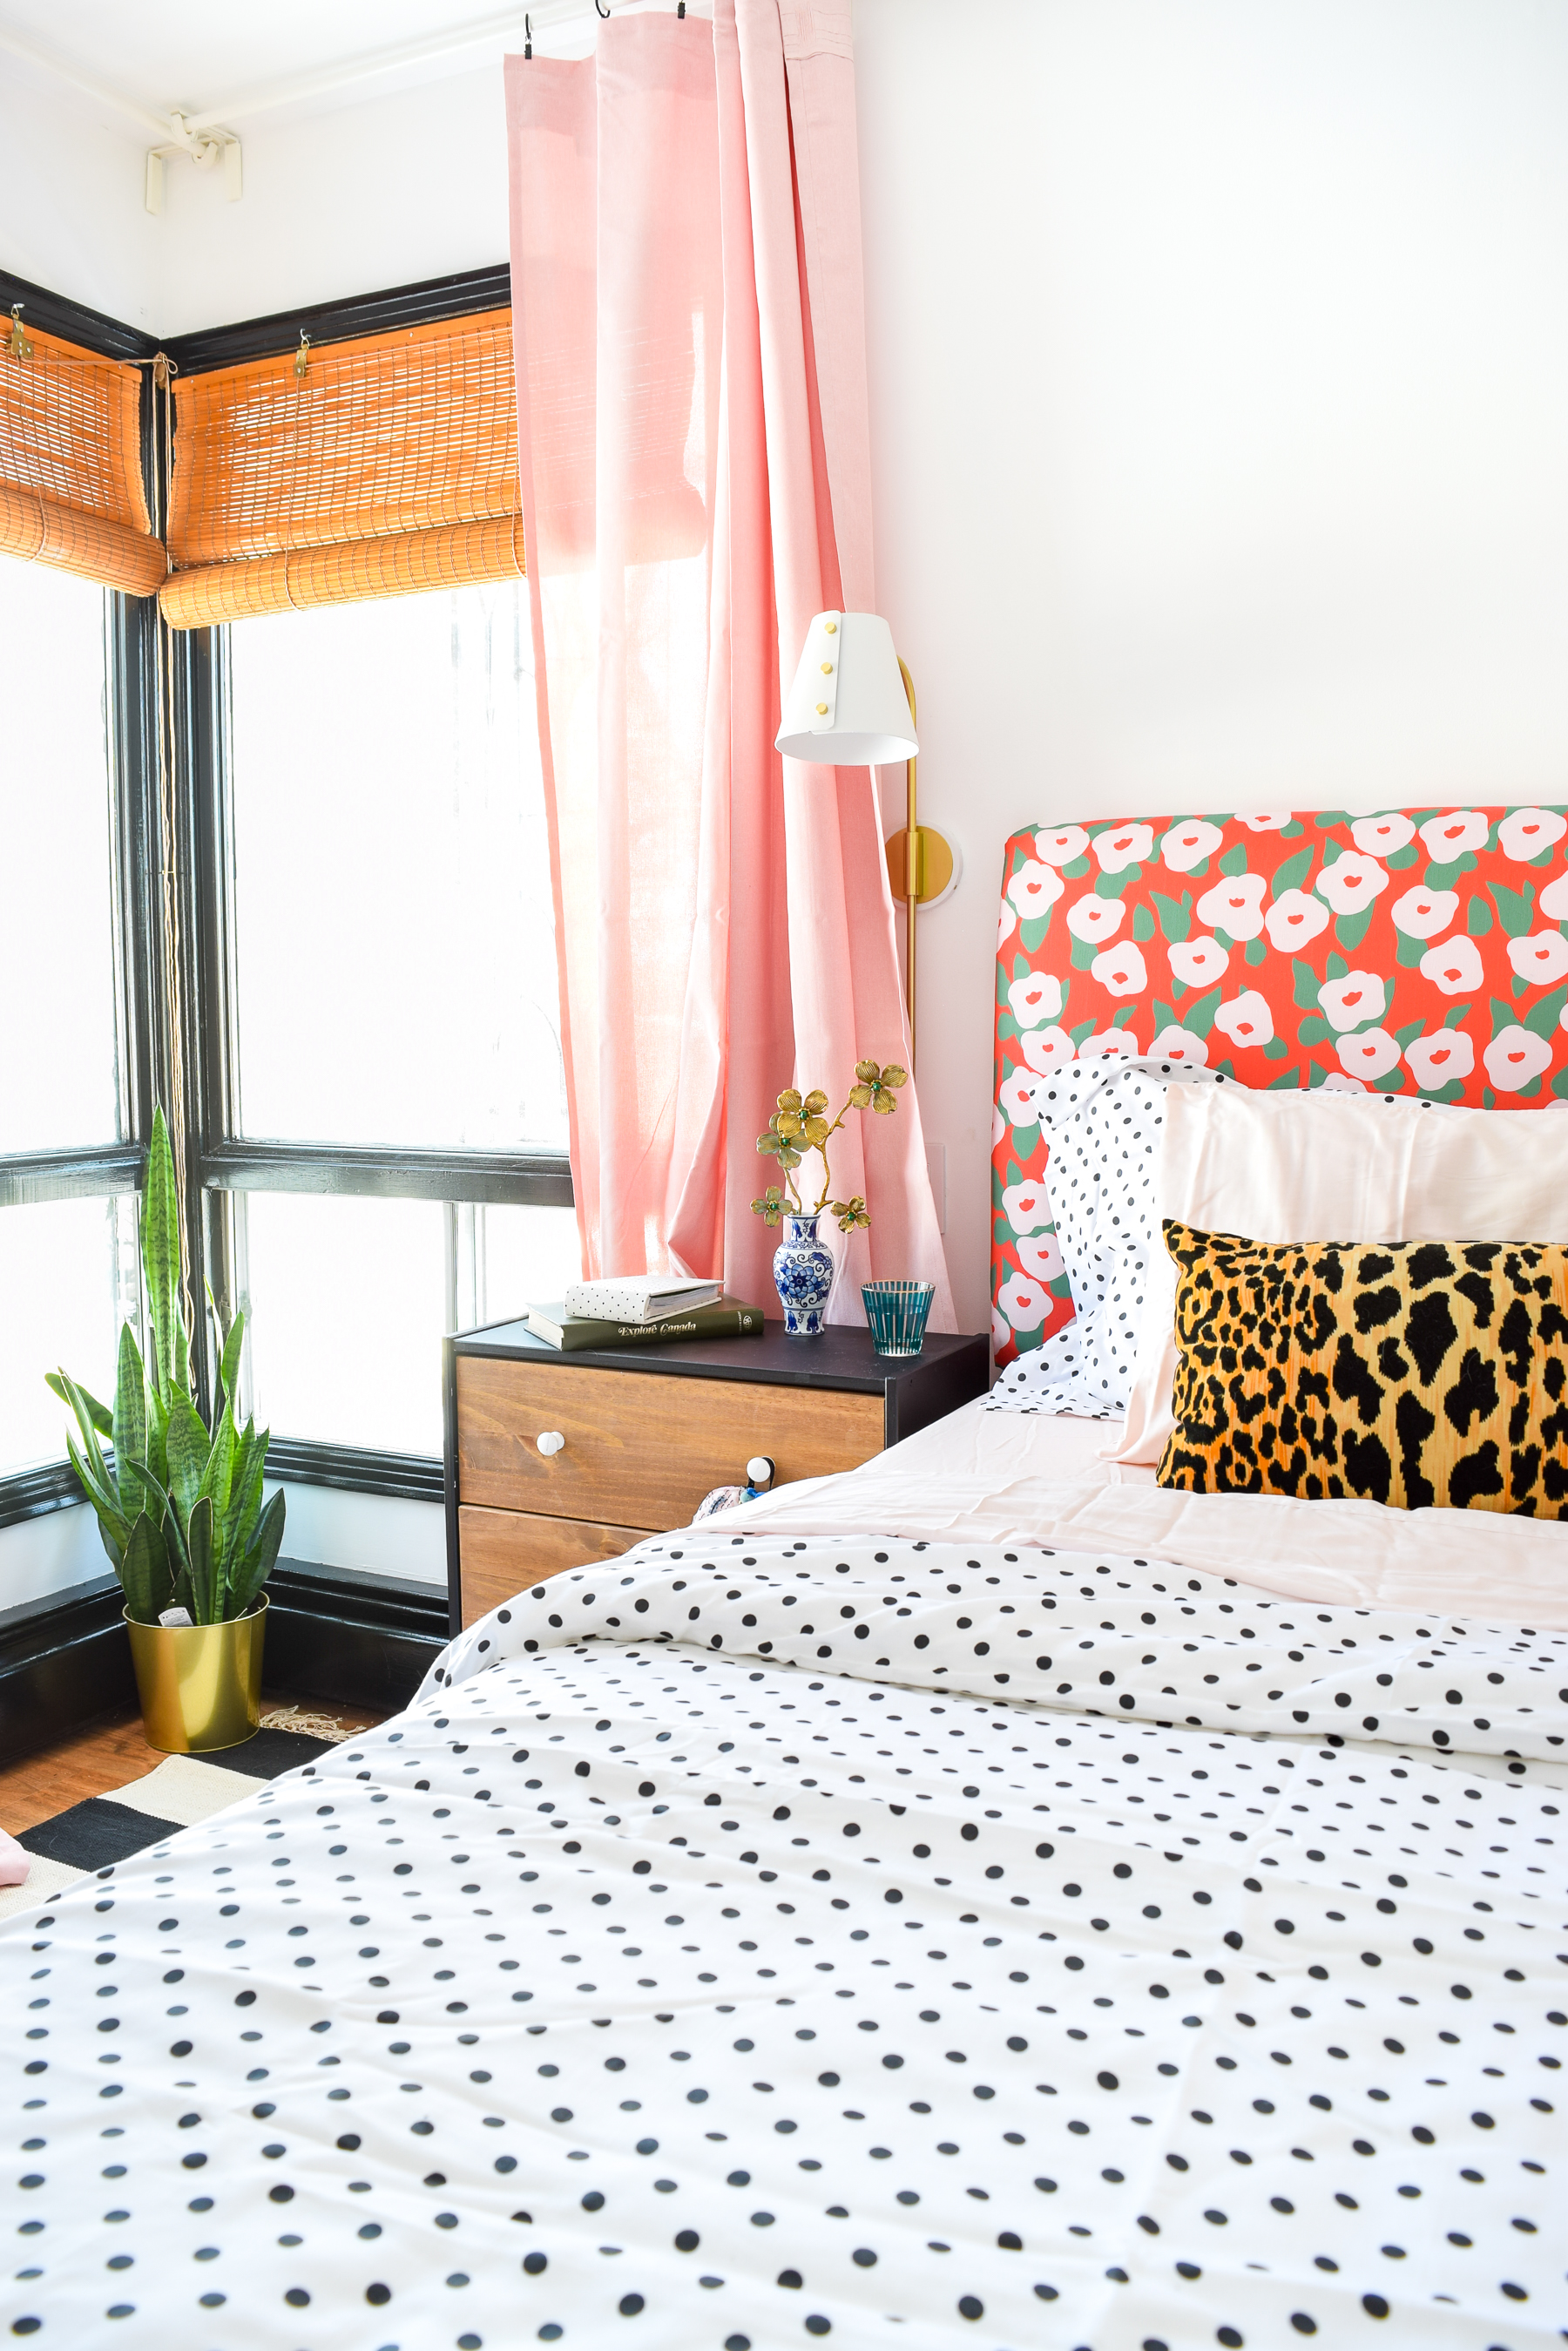 Our Floral Glam Master Bedroom + Closet is a feast for the eyes! Using a simple palette, but lots of pattern and metallics, we created our own oasis.